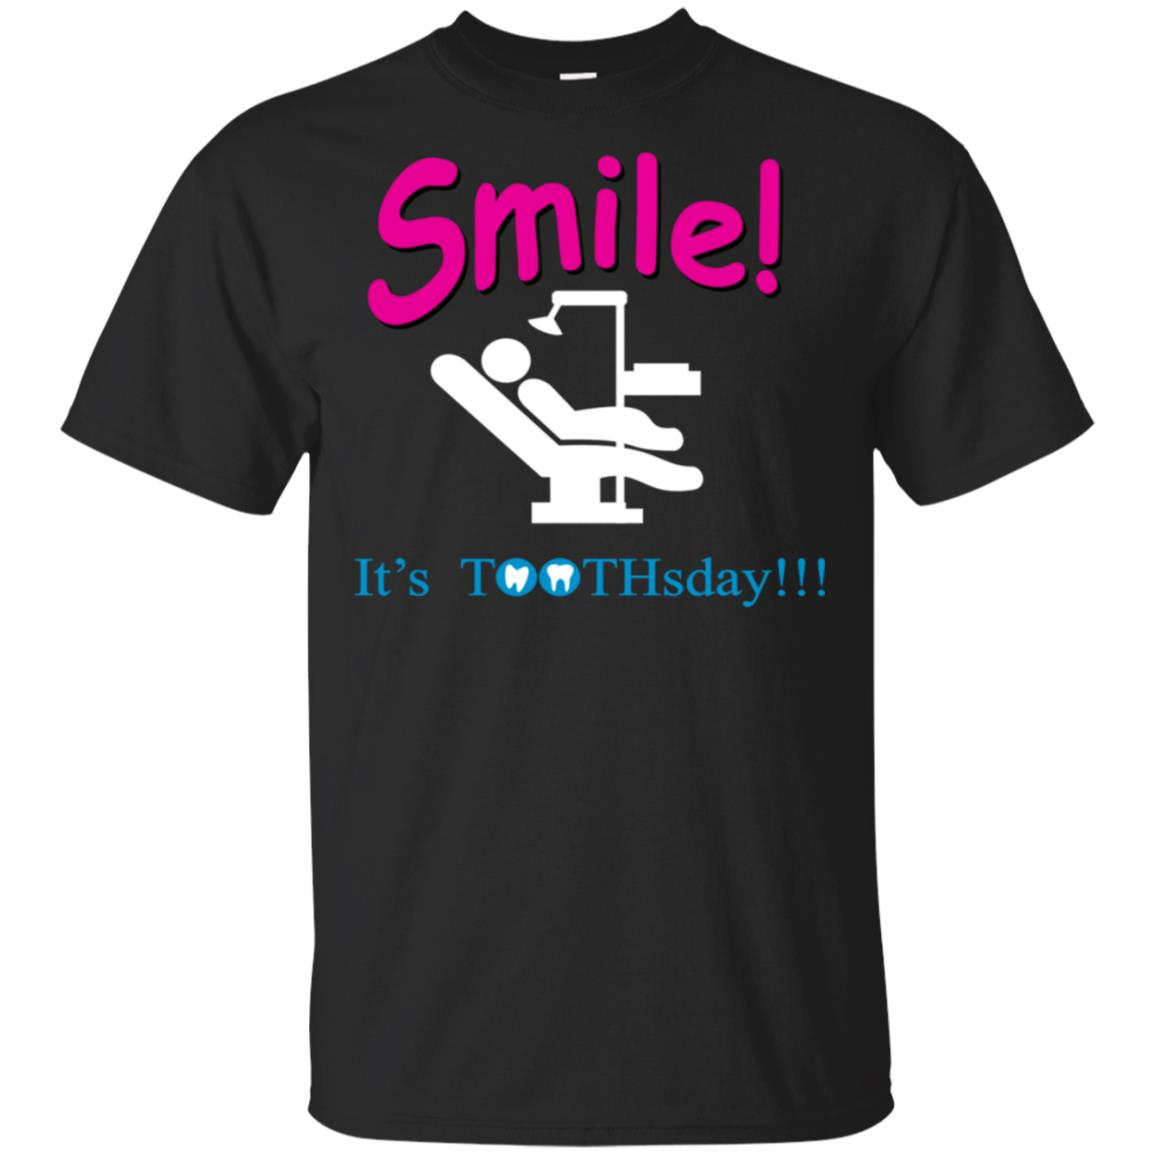 Smile It's TOOTHSday Funny Log Sleeve Unisex Short Sleeve